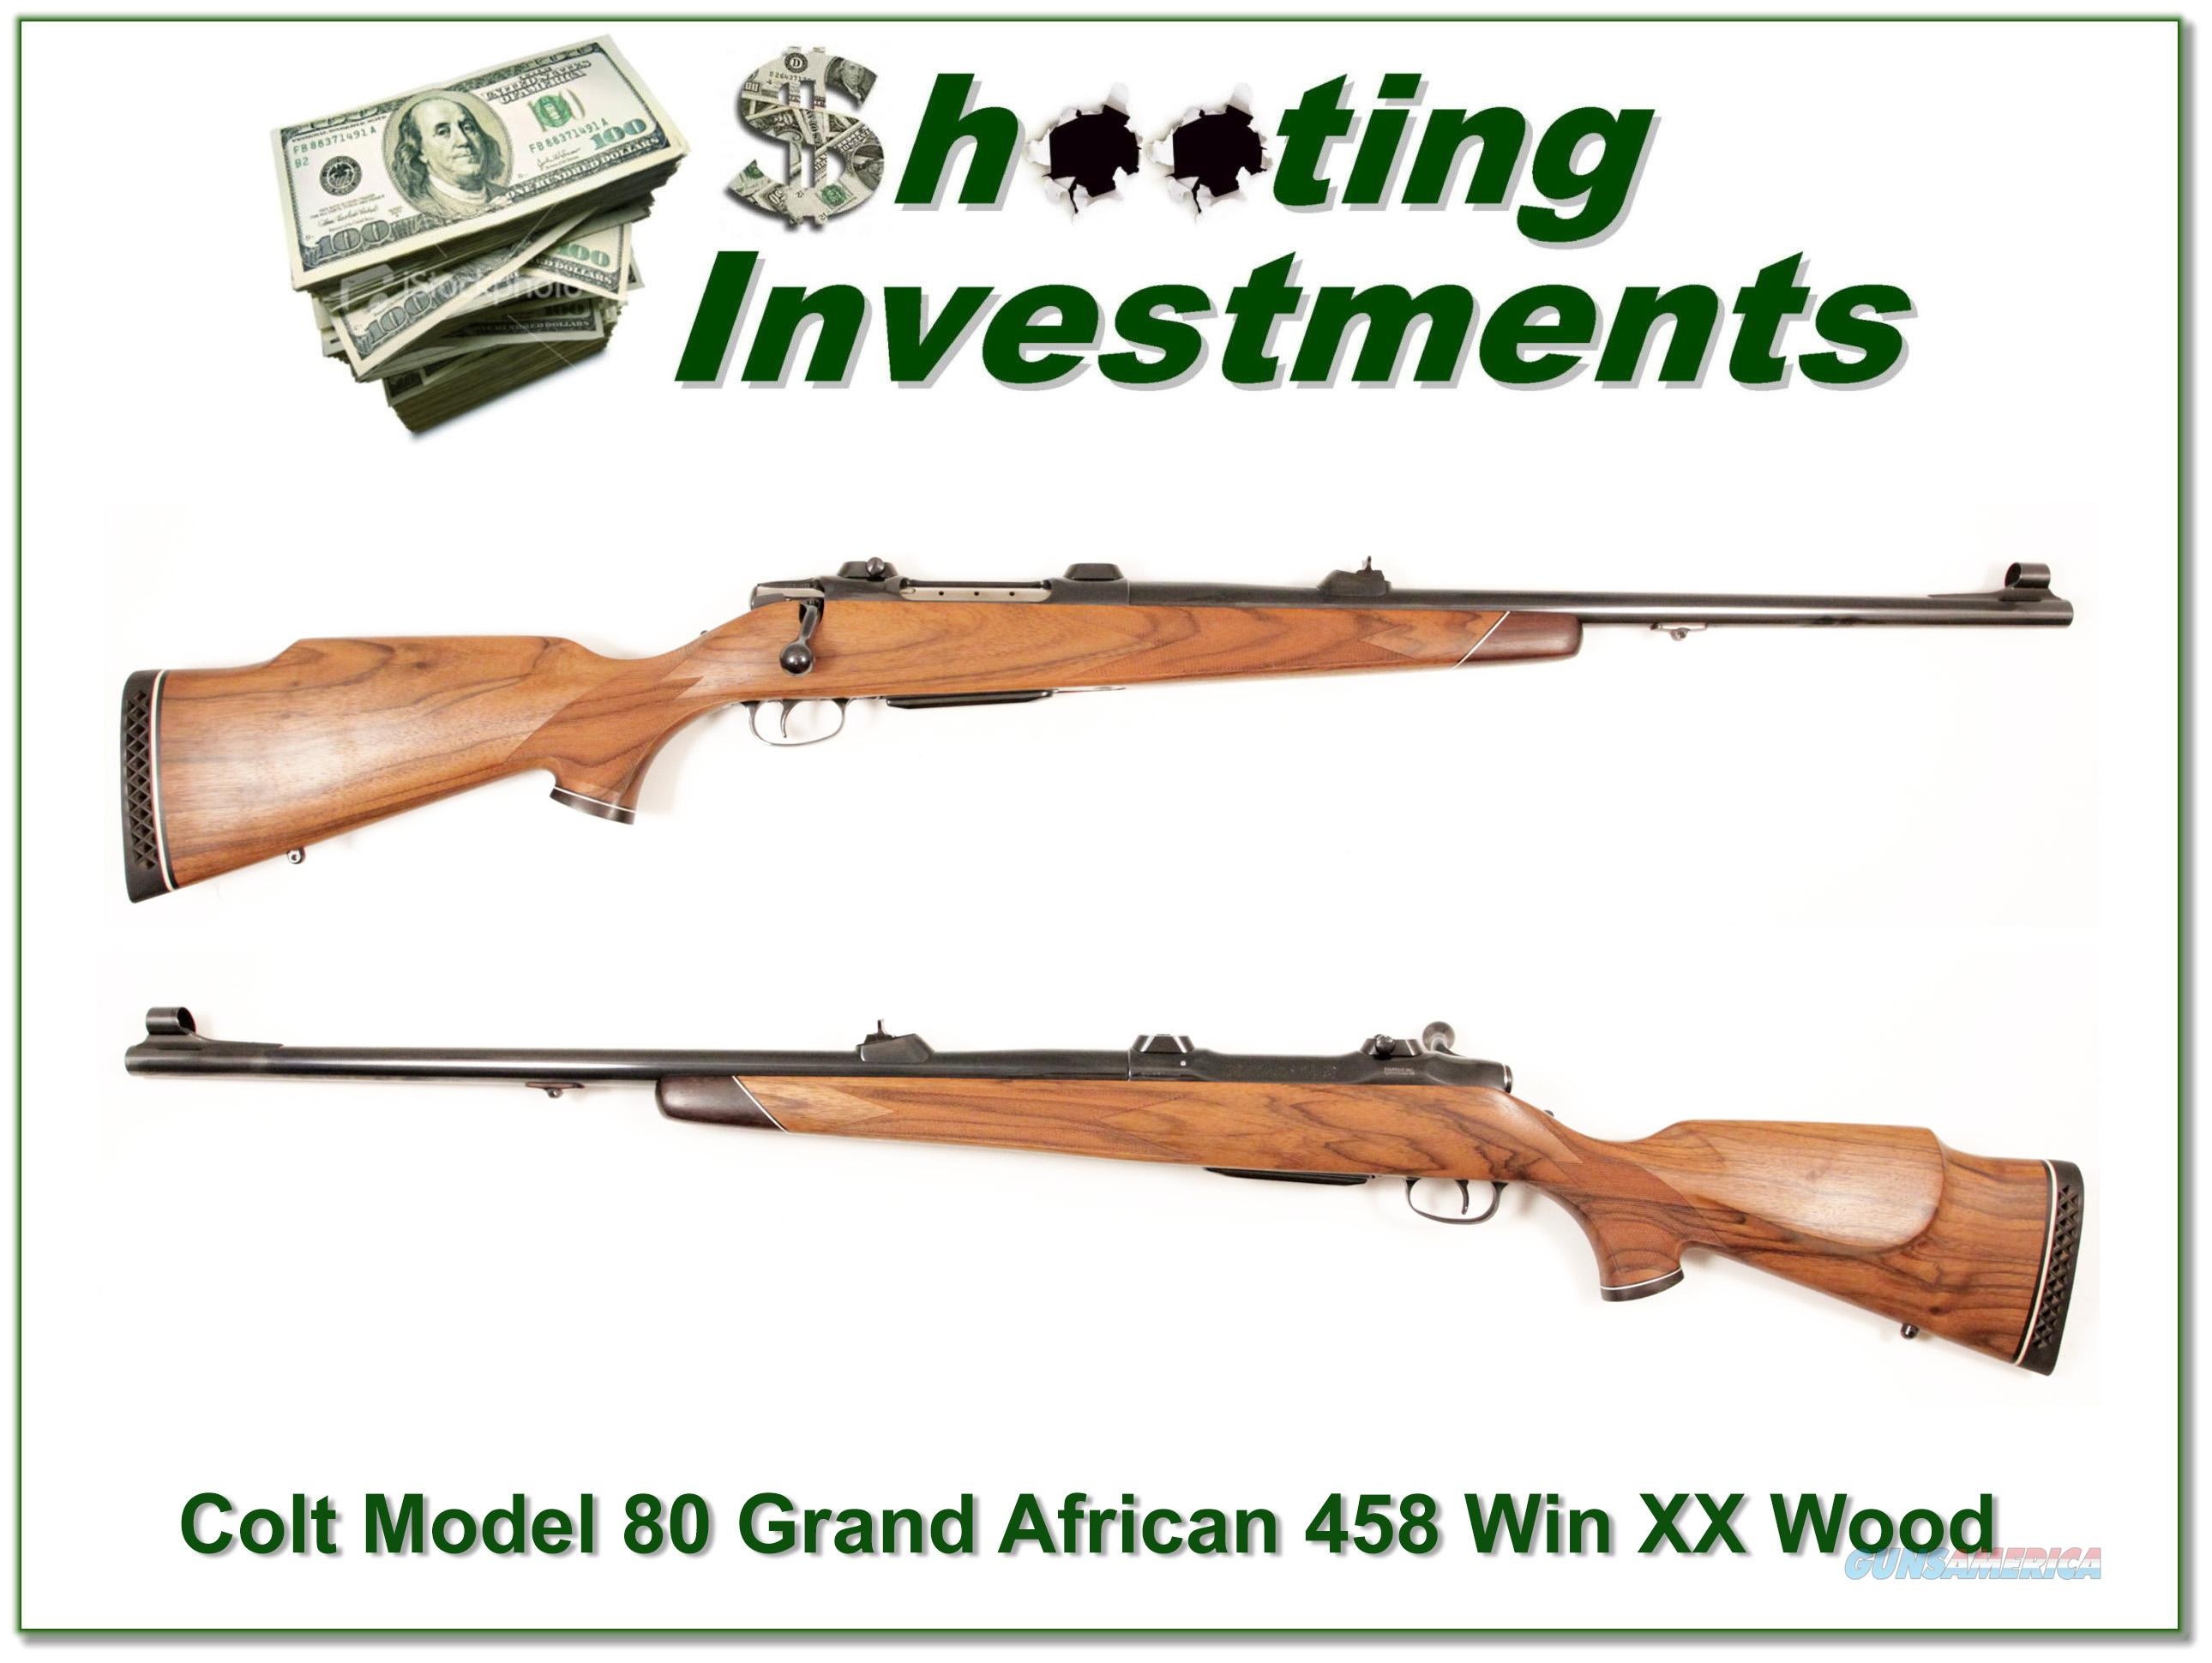 Sauer 80 Grand African 458 Win XX Wood!  Guns > Rifles > Sig - Sauer/Sigarms Rifles